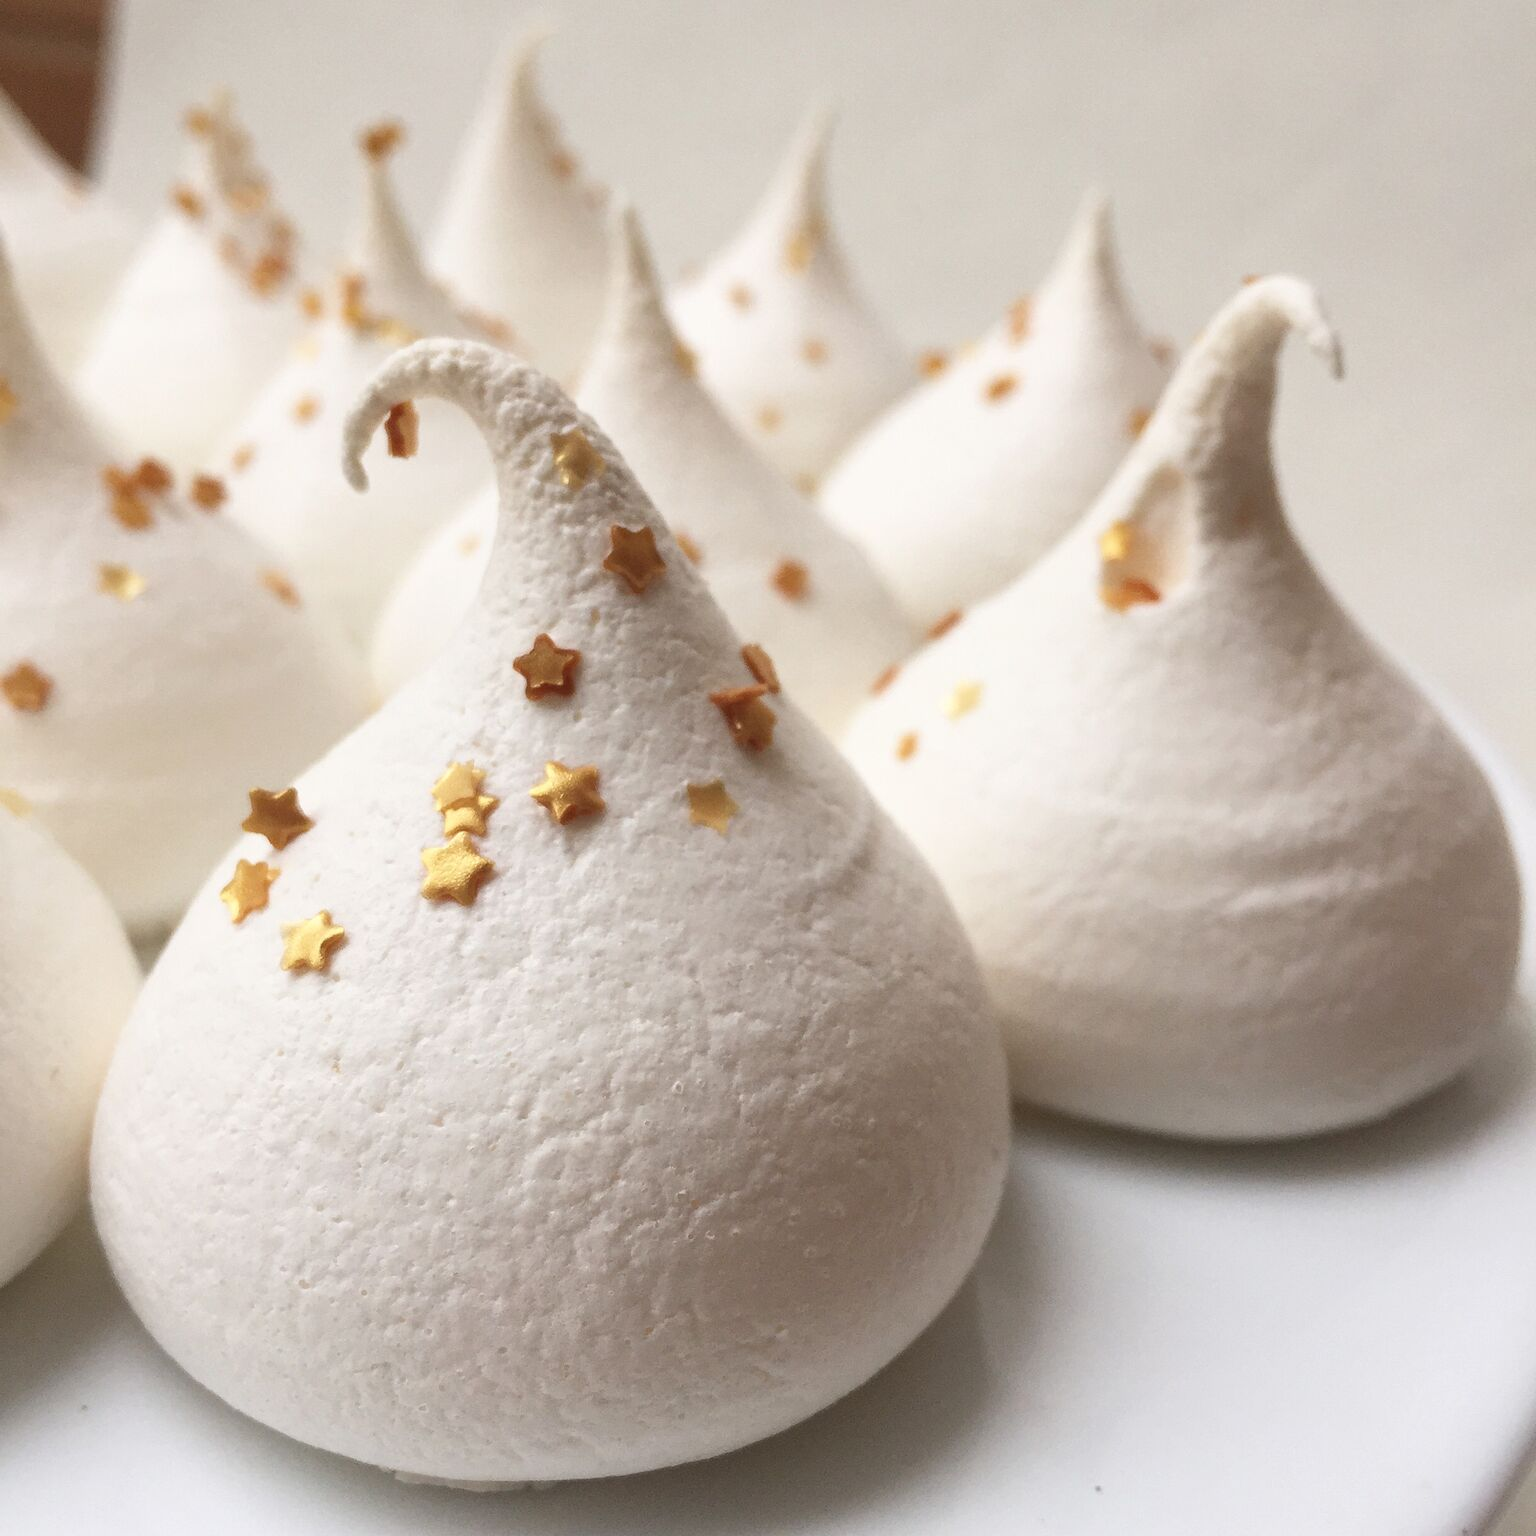 Twinkle Twinkle Little Star Themed Baby Shower - Star Themed Meringues.jpg